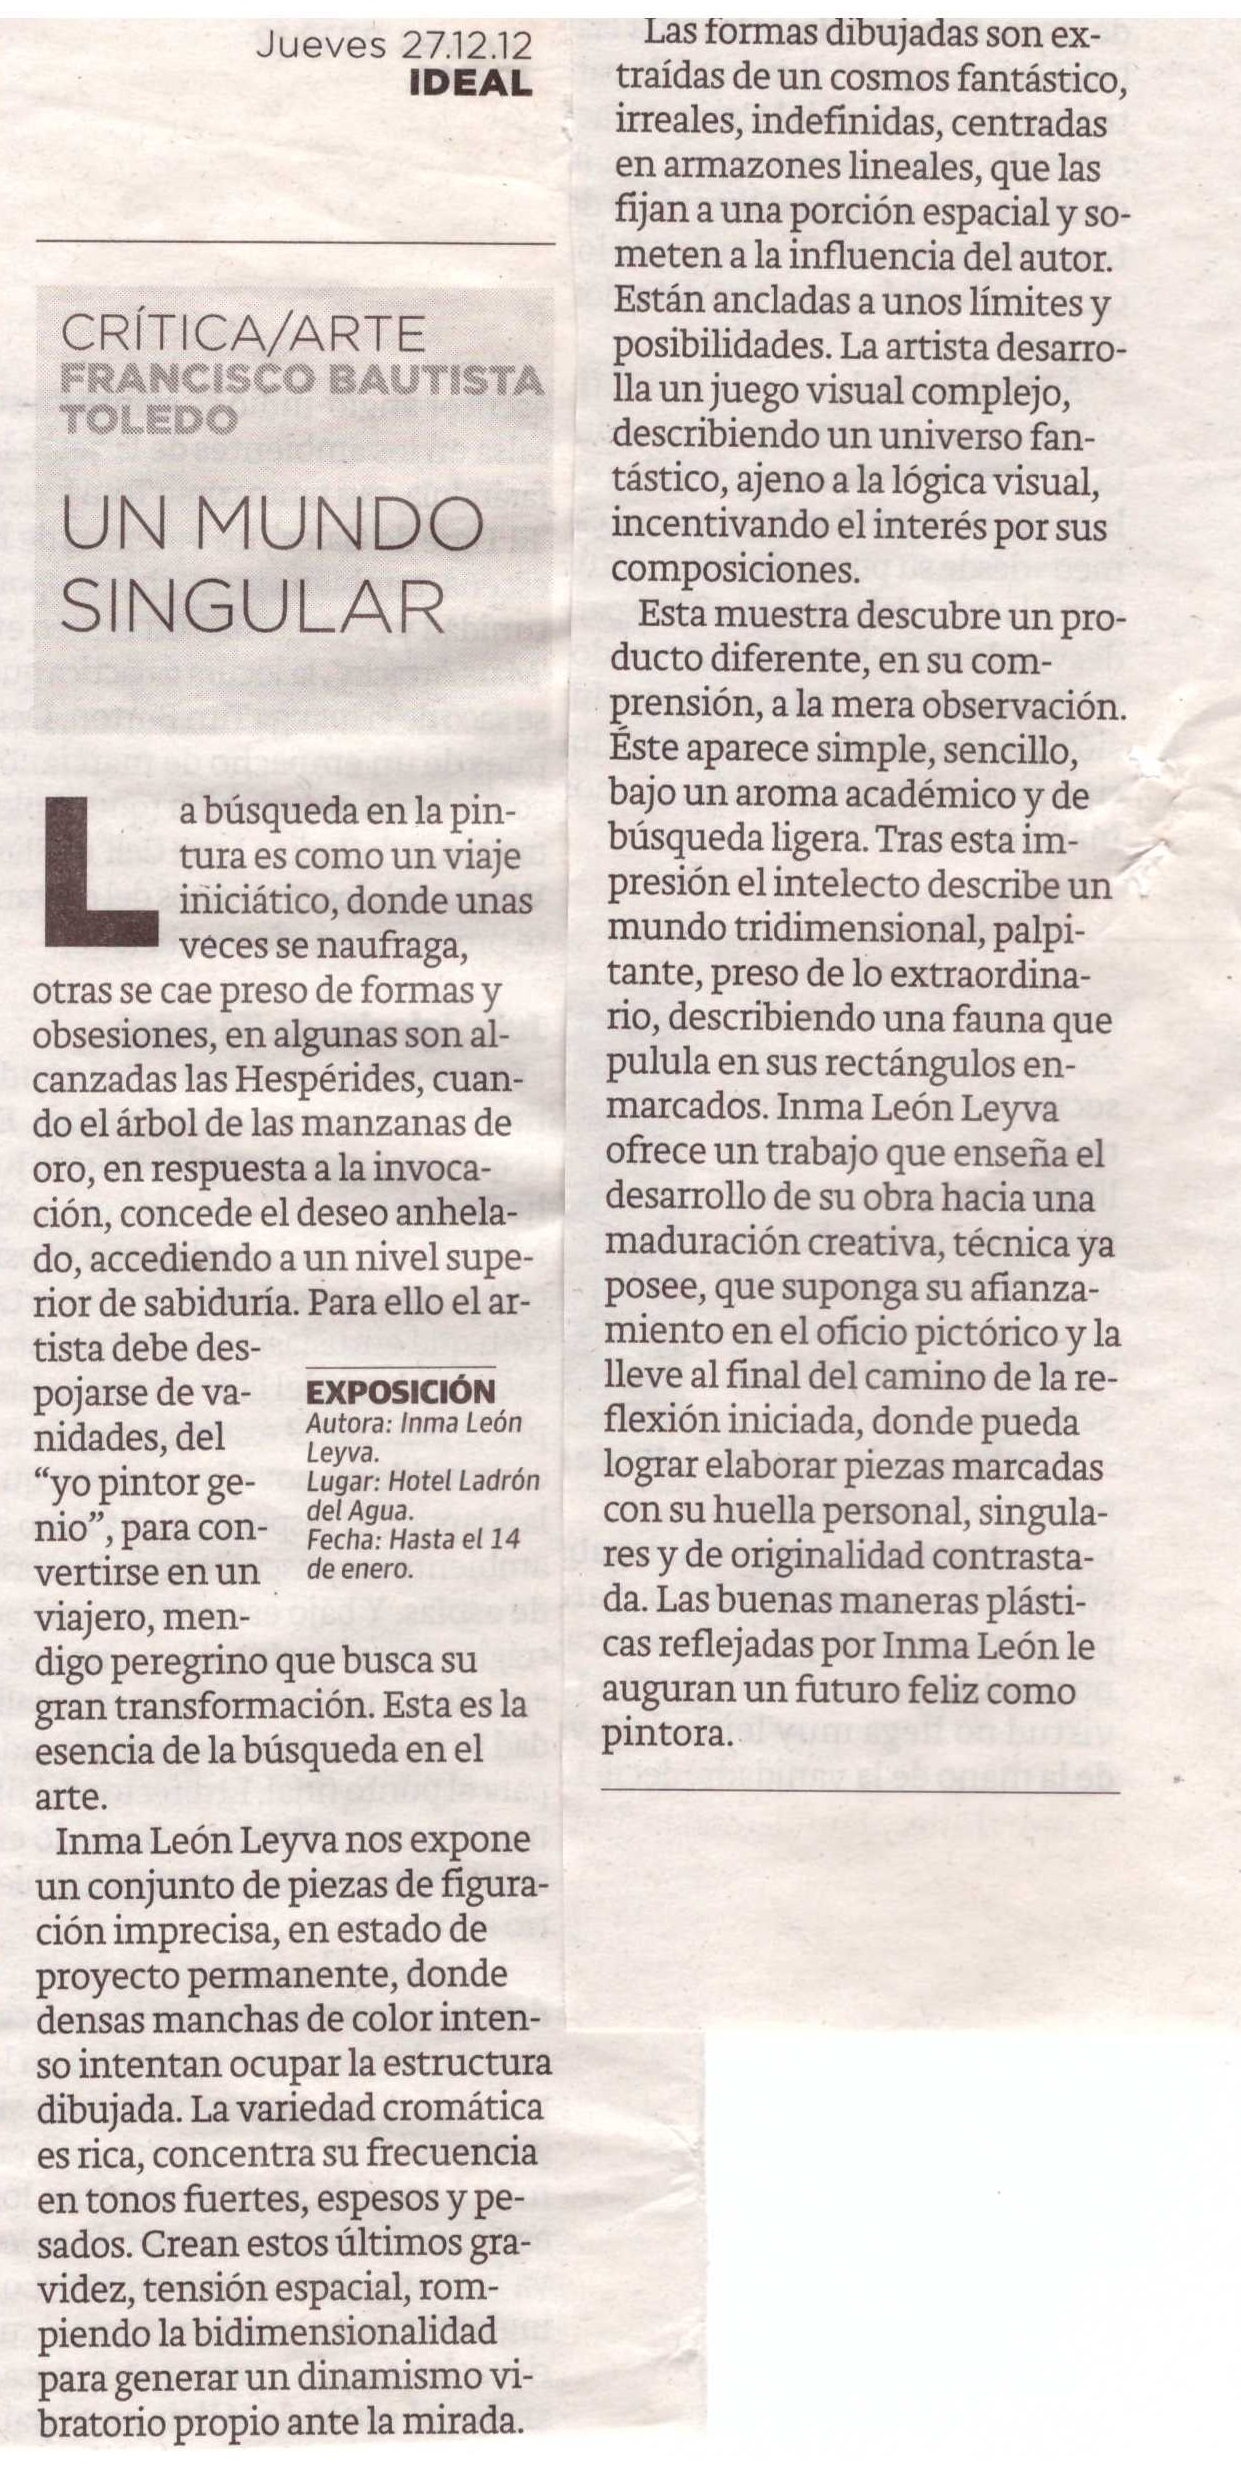 Art review of exhibition by Inma León Leyva (INLELEY)